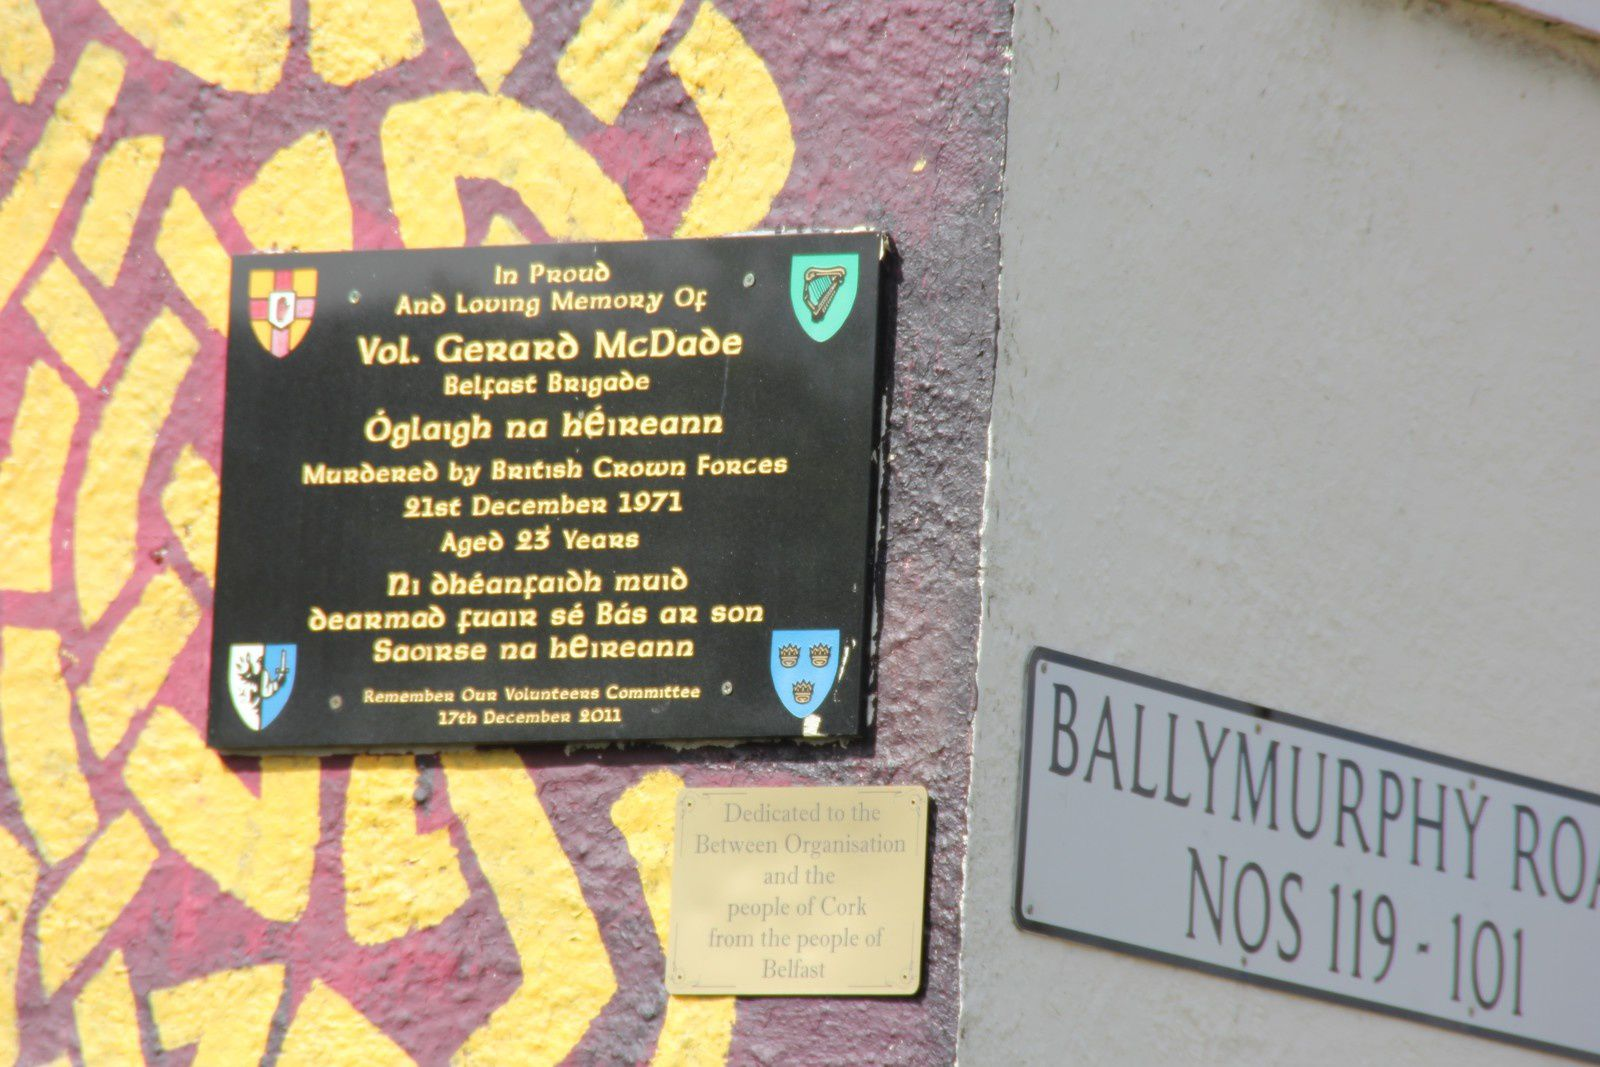 604) Ballymurphy road, West Belfast